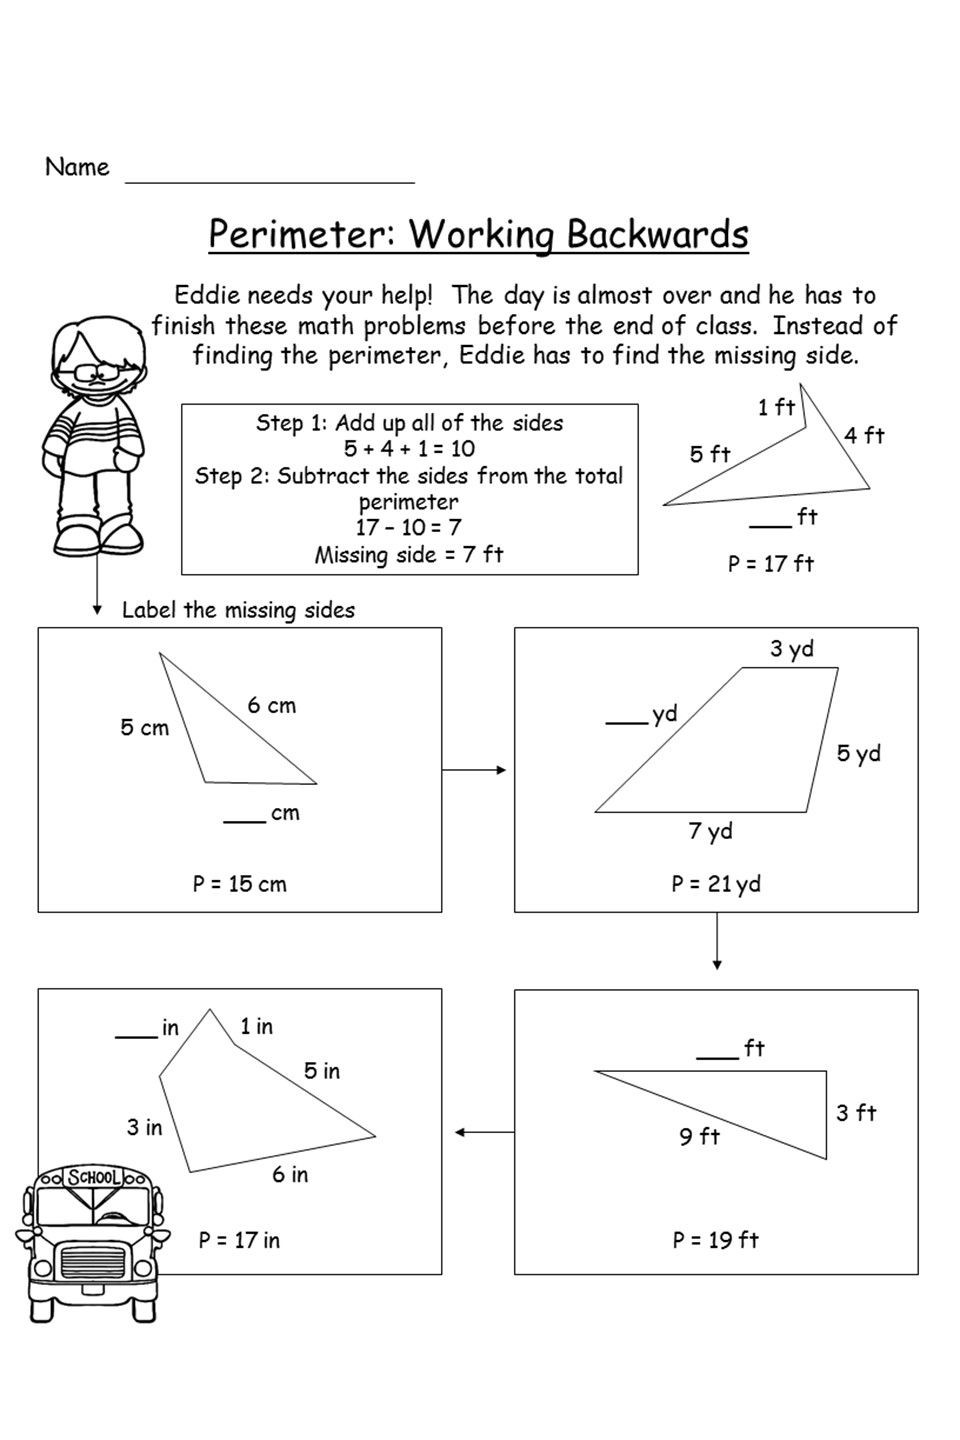 Perimeter Worksheets for 3rd Grade Perimeter Unit Activities Game Project and assessment In